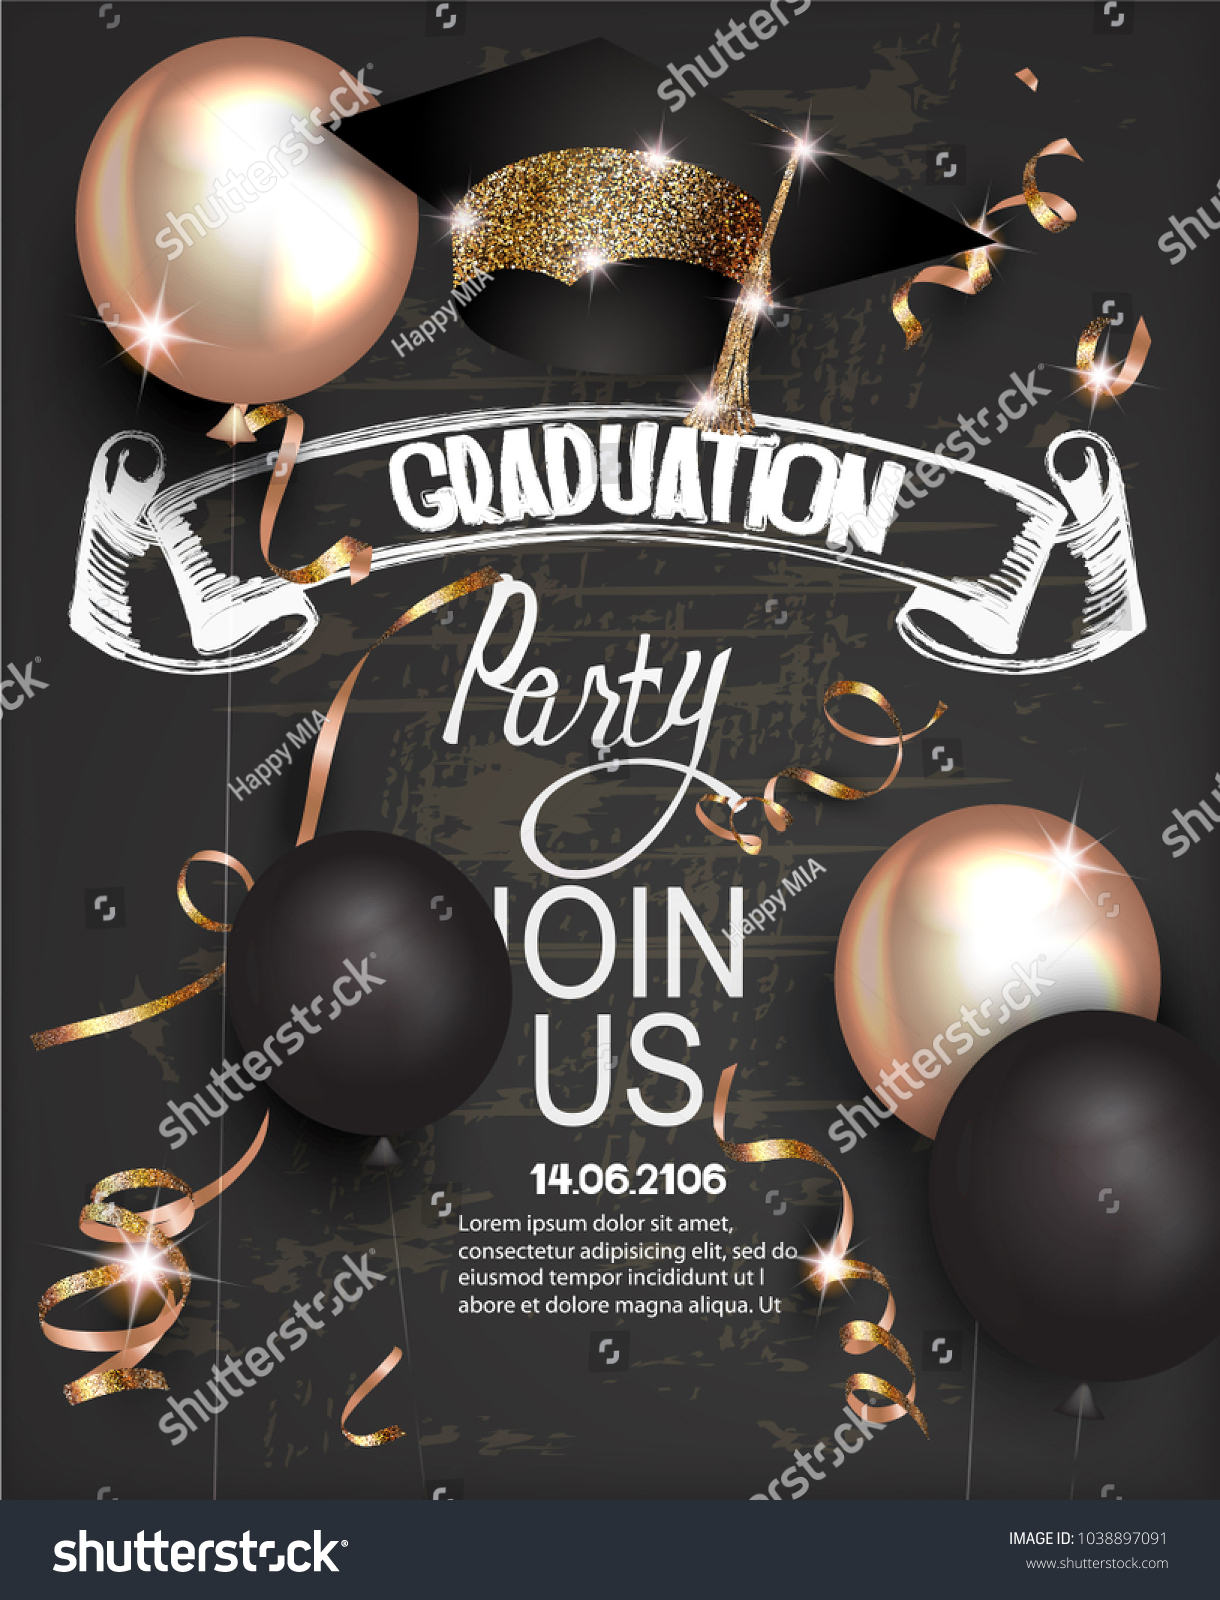 Graduation Party Invitation Card Golden Serpantine Stock Vector ...